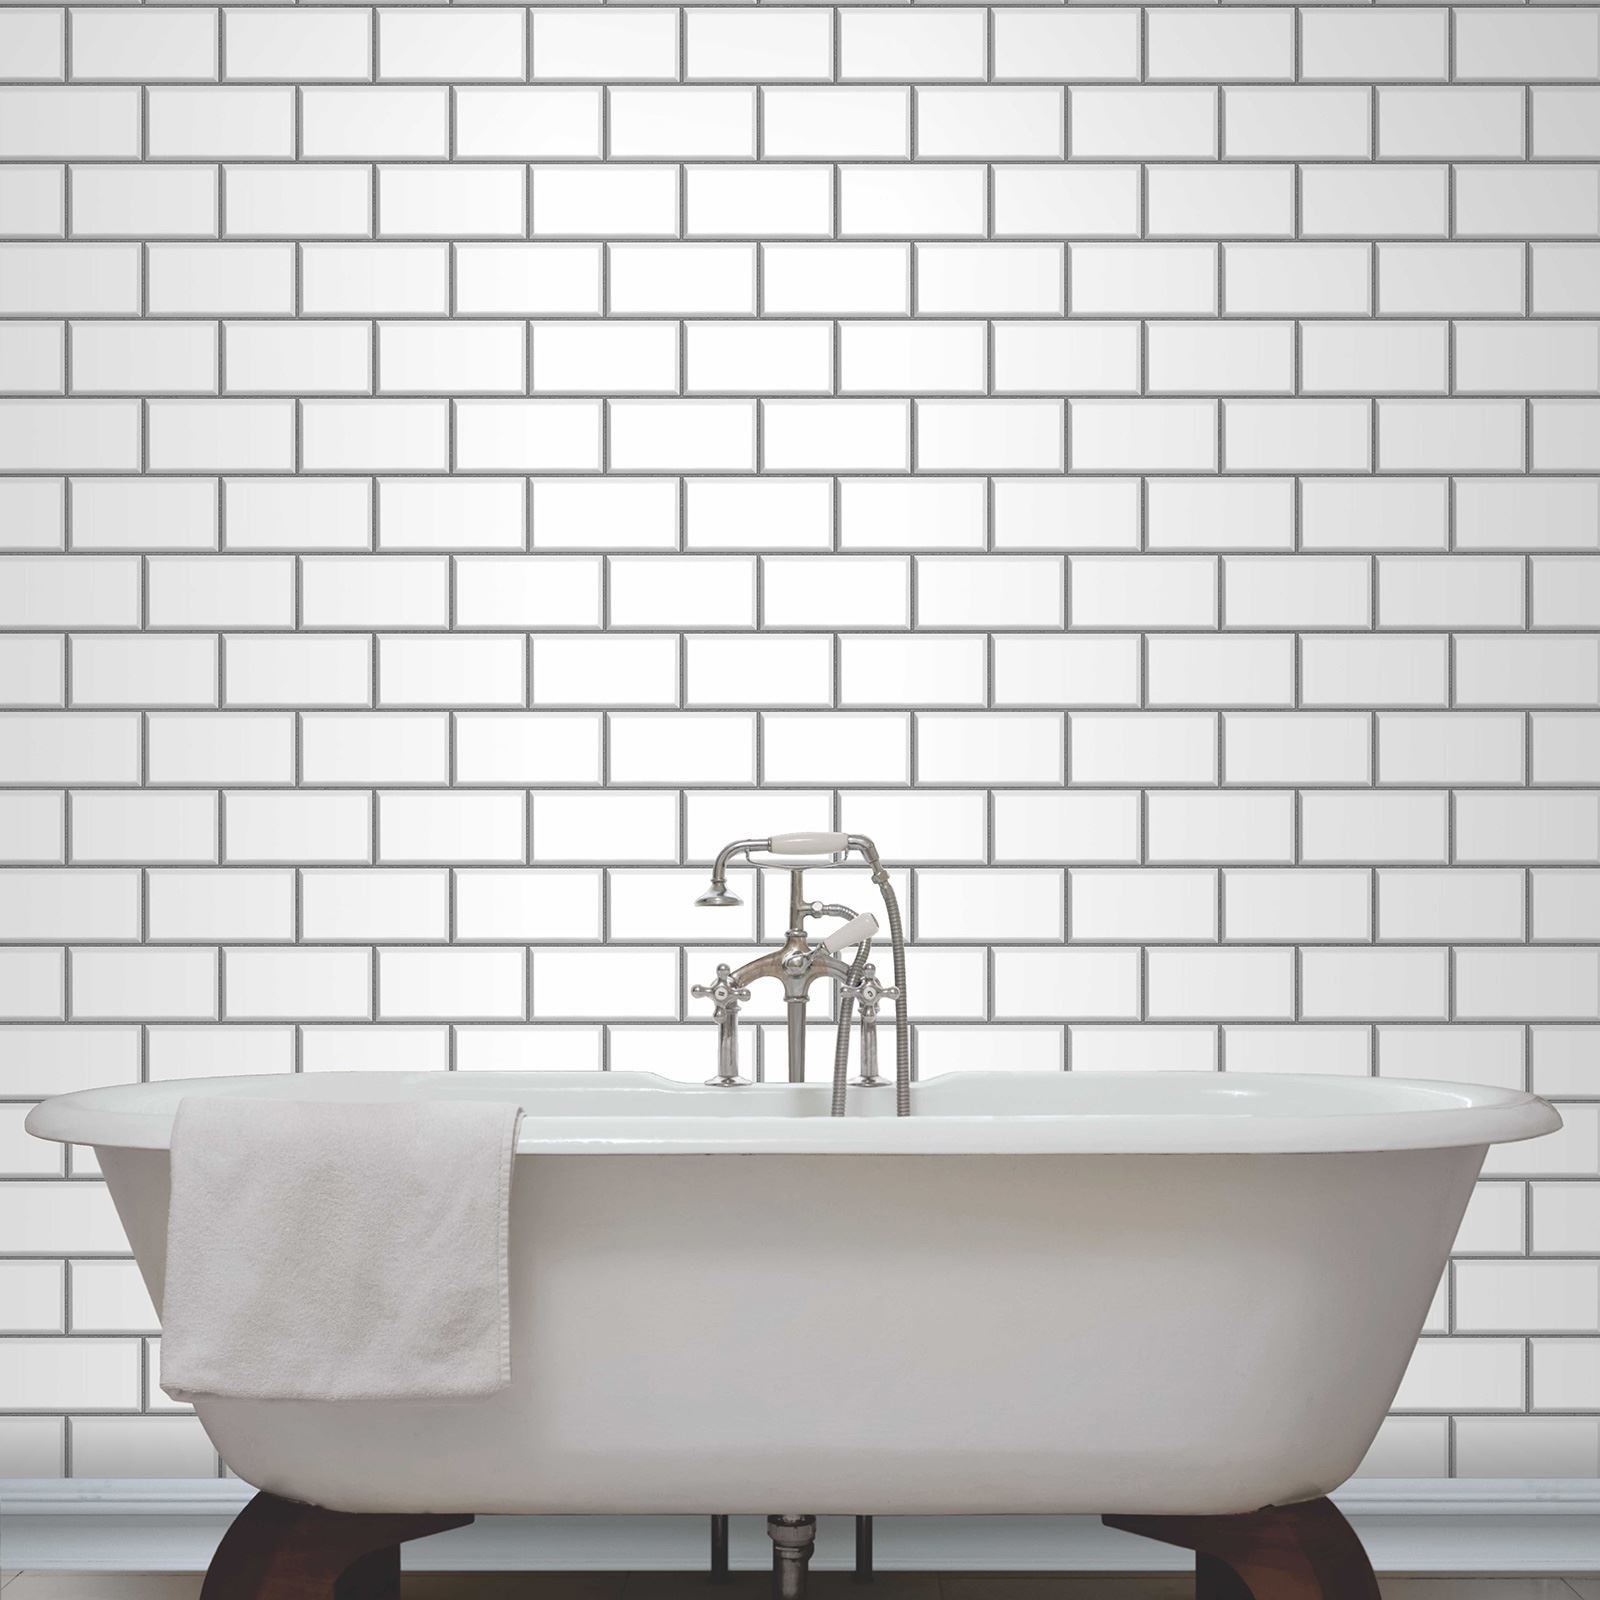 Fine decor subway tile effect wallpaper black white for Tile effect bathroom wallpaper